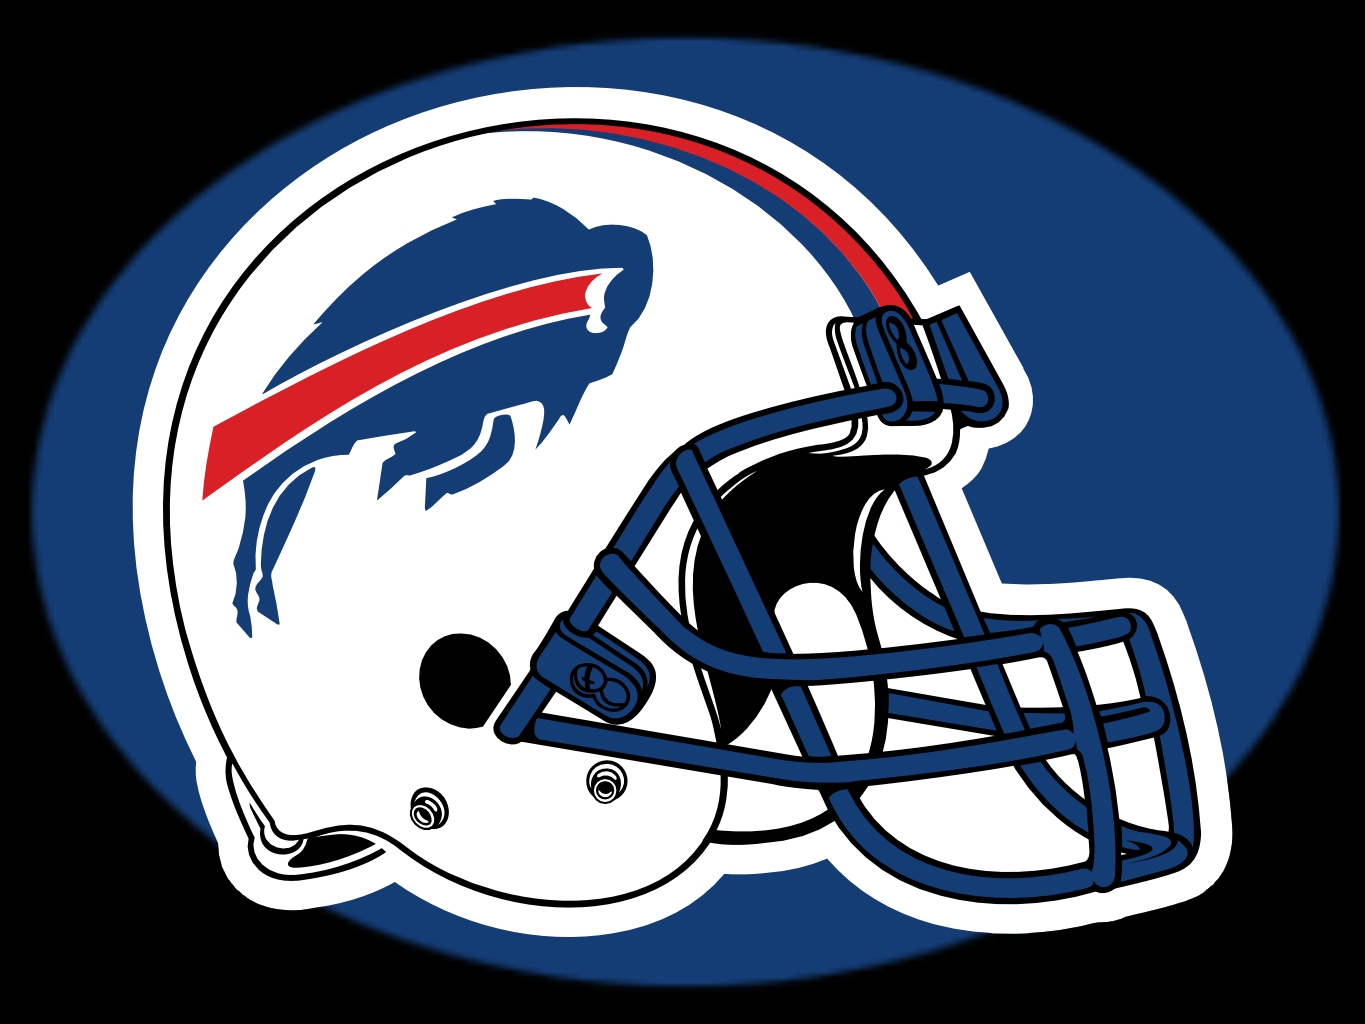 NFL Team Logos   Photo 51 of 416 phombocom 1365x1024